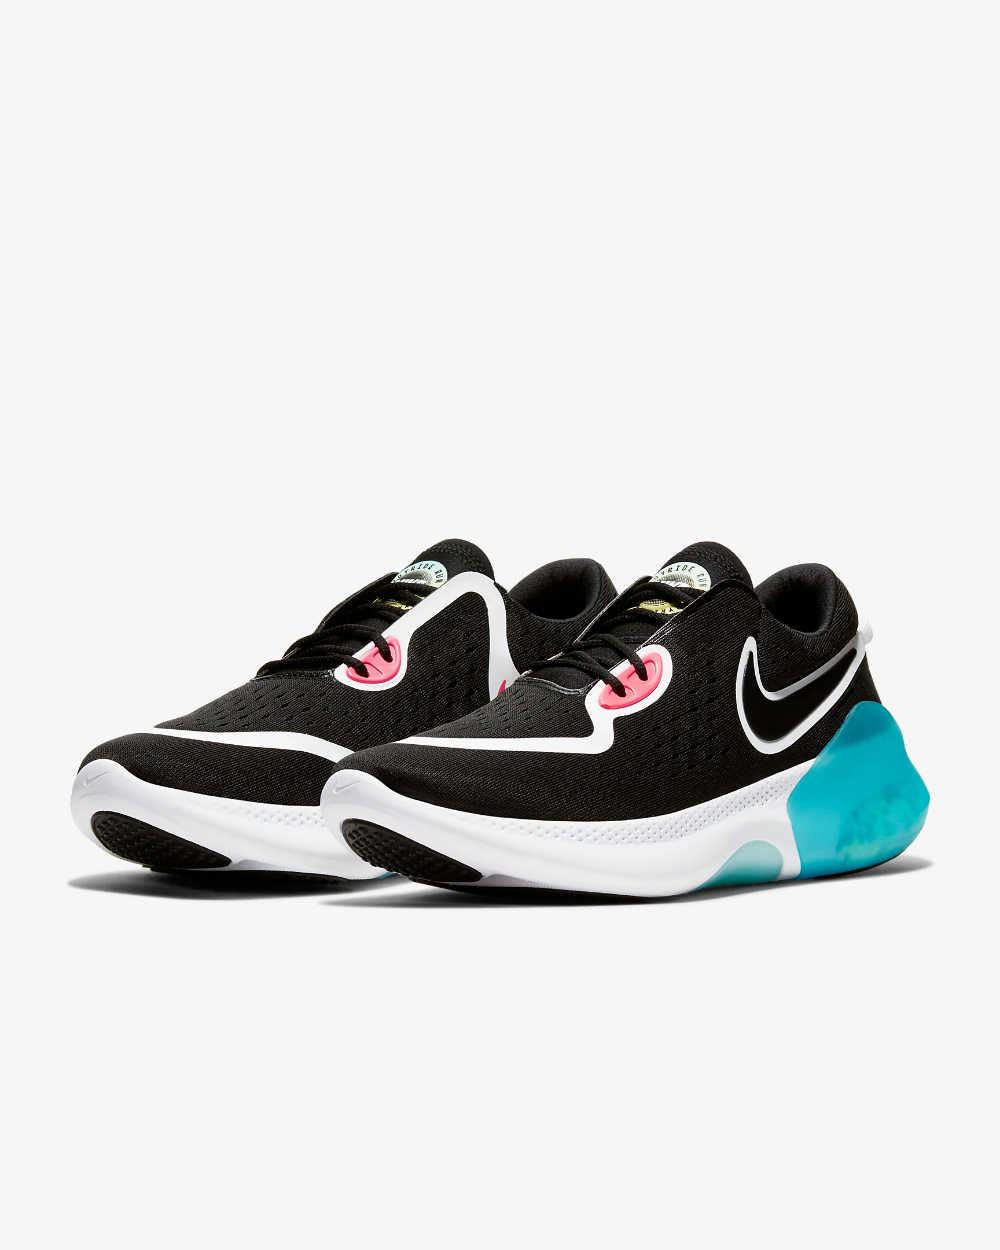 Decir la verdad local Superficial  Nike Joyride Dual Run Men's Running Shoe. Nike.com en 2020 | Zapatillas  running hombre, Zapatillas running, Zapatillas para correr